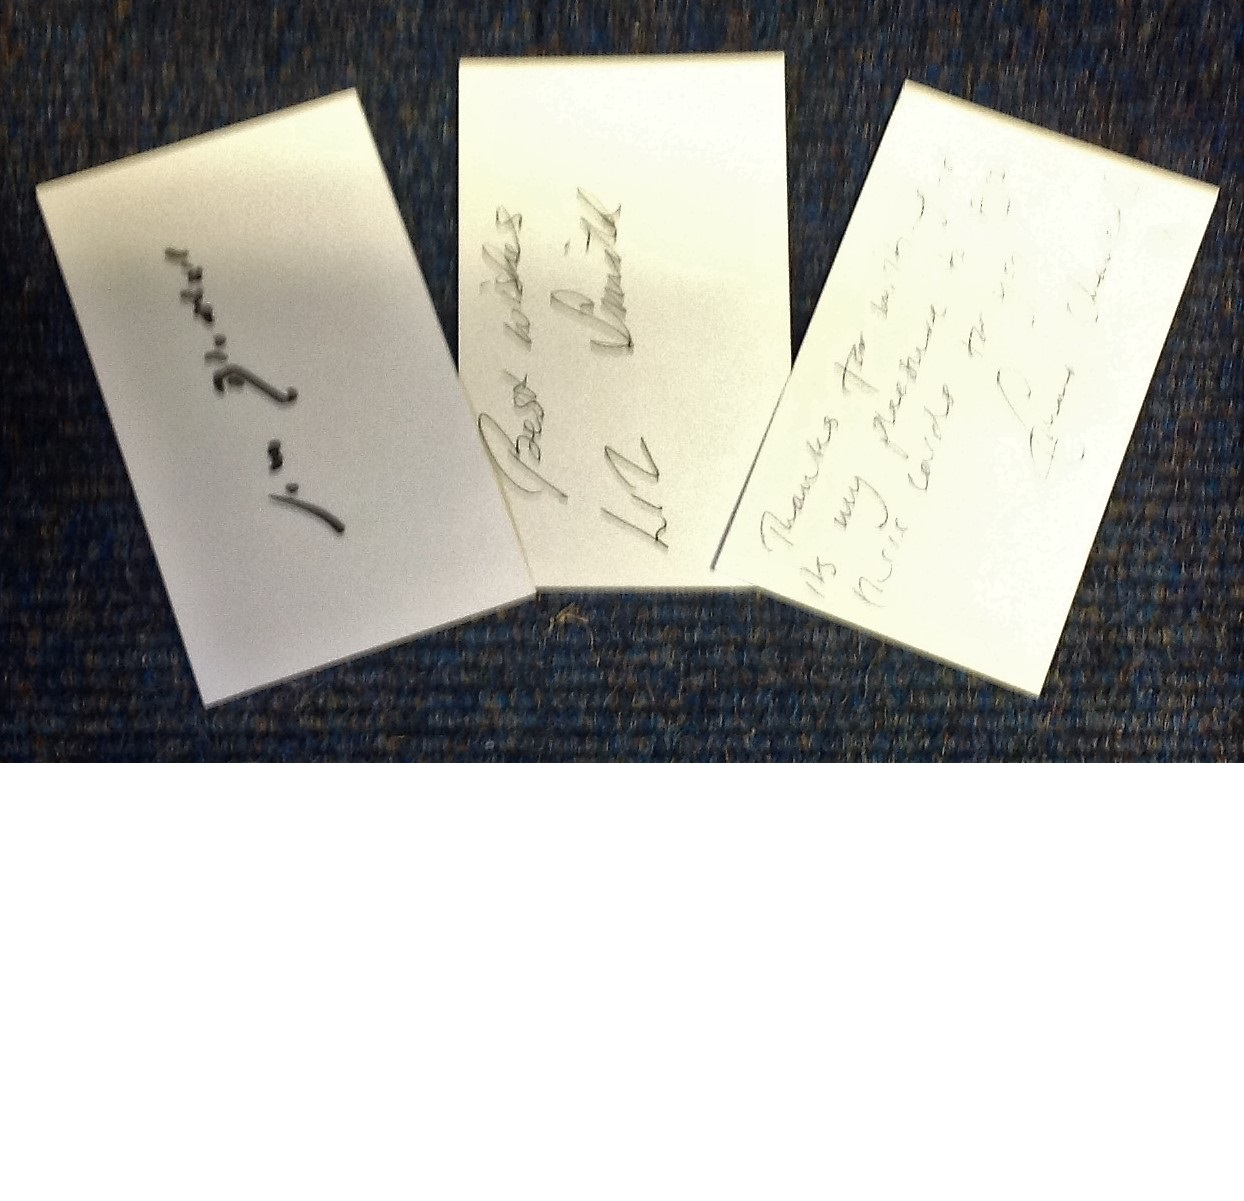 Lot 23 - Vicar of Dibley signed white card collection. 3 cards signed by John Bluthal, Emma Chambers and